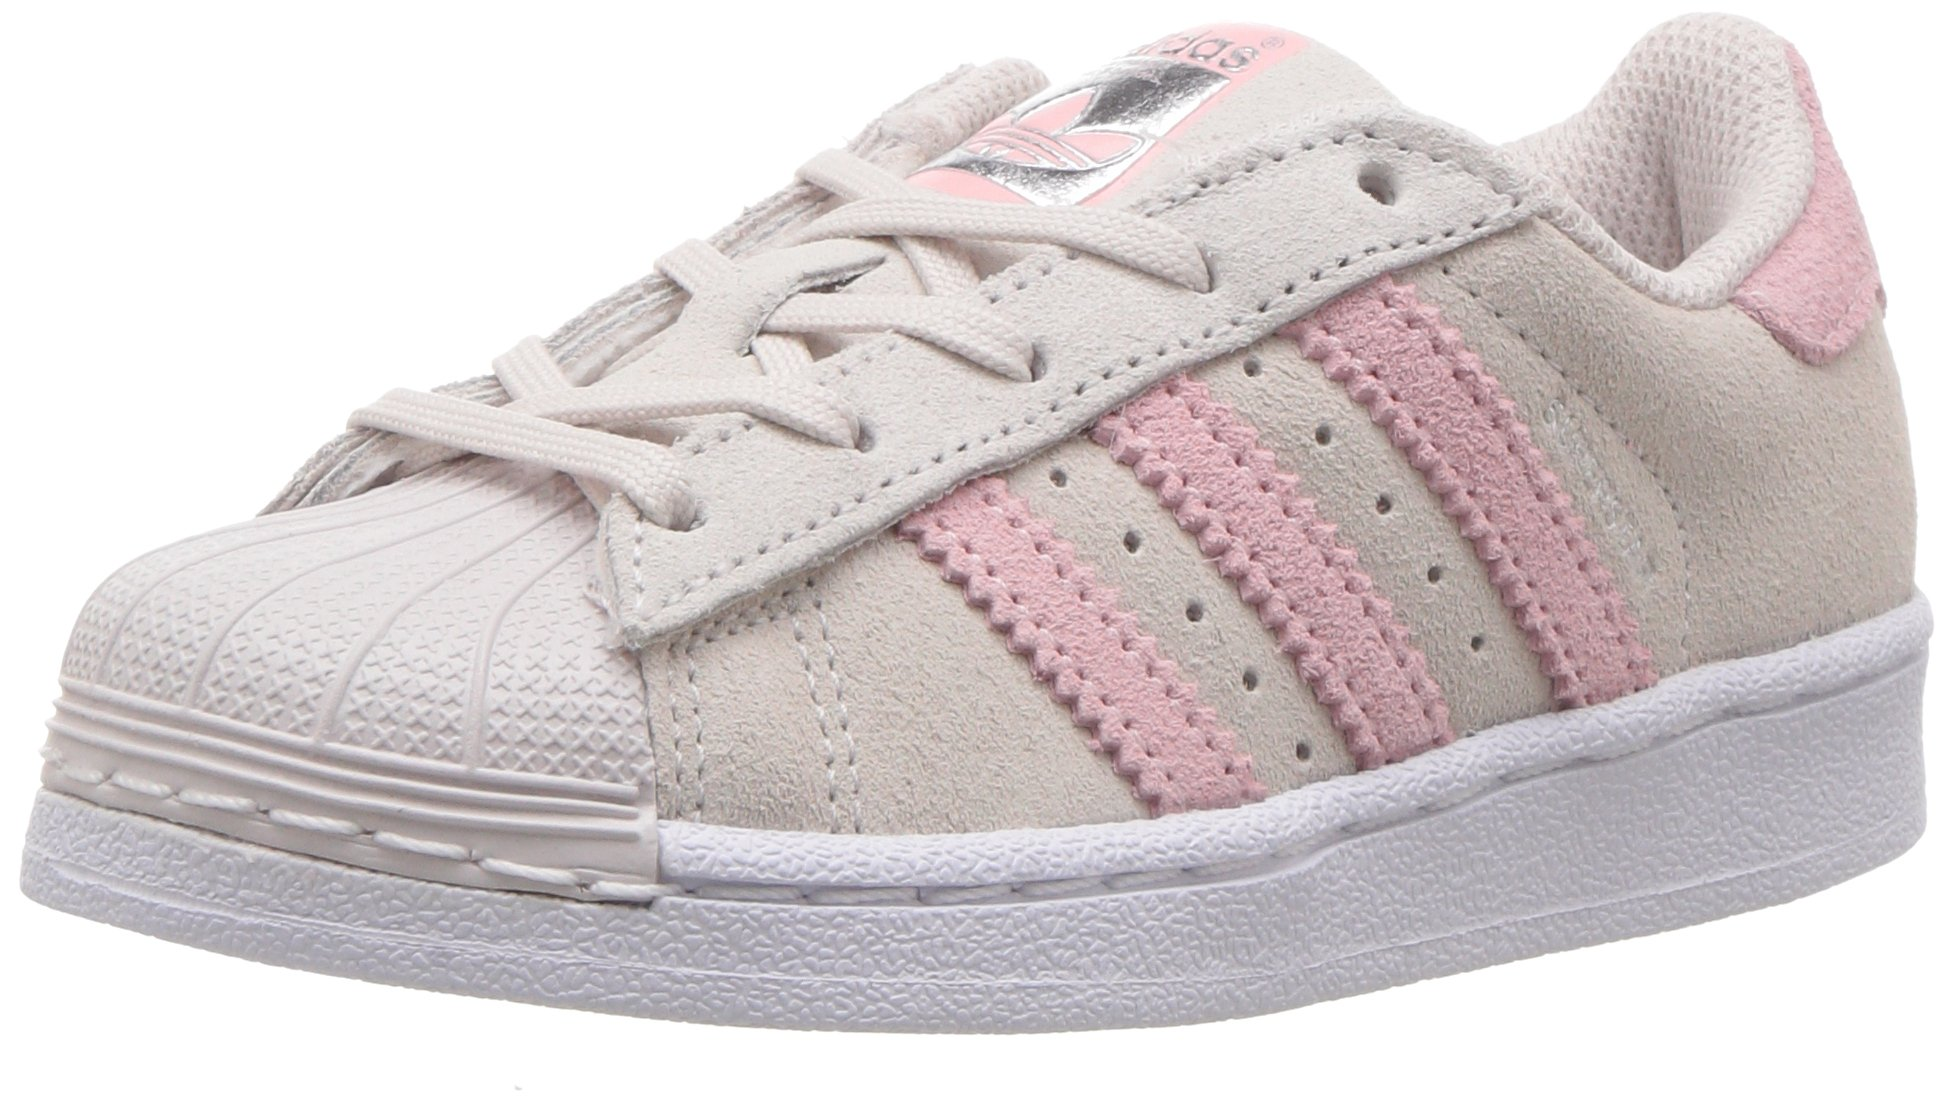 adidas superstar pearl grey